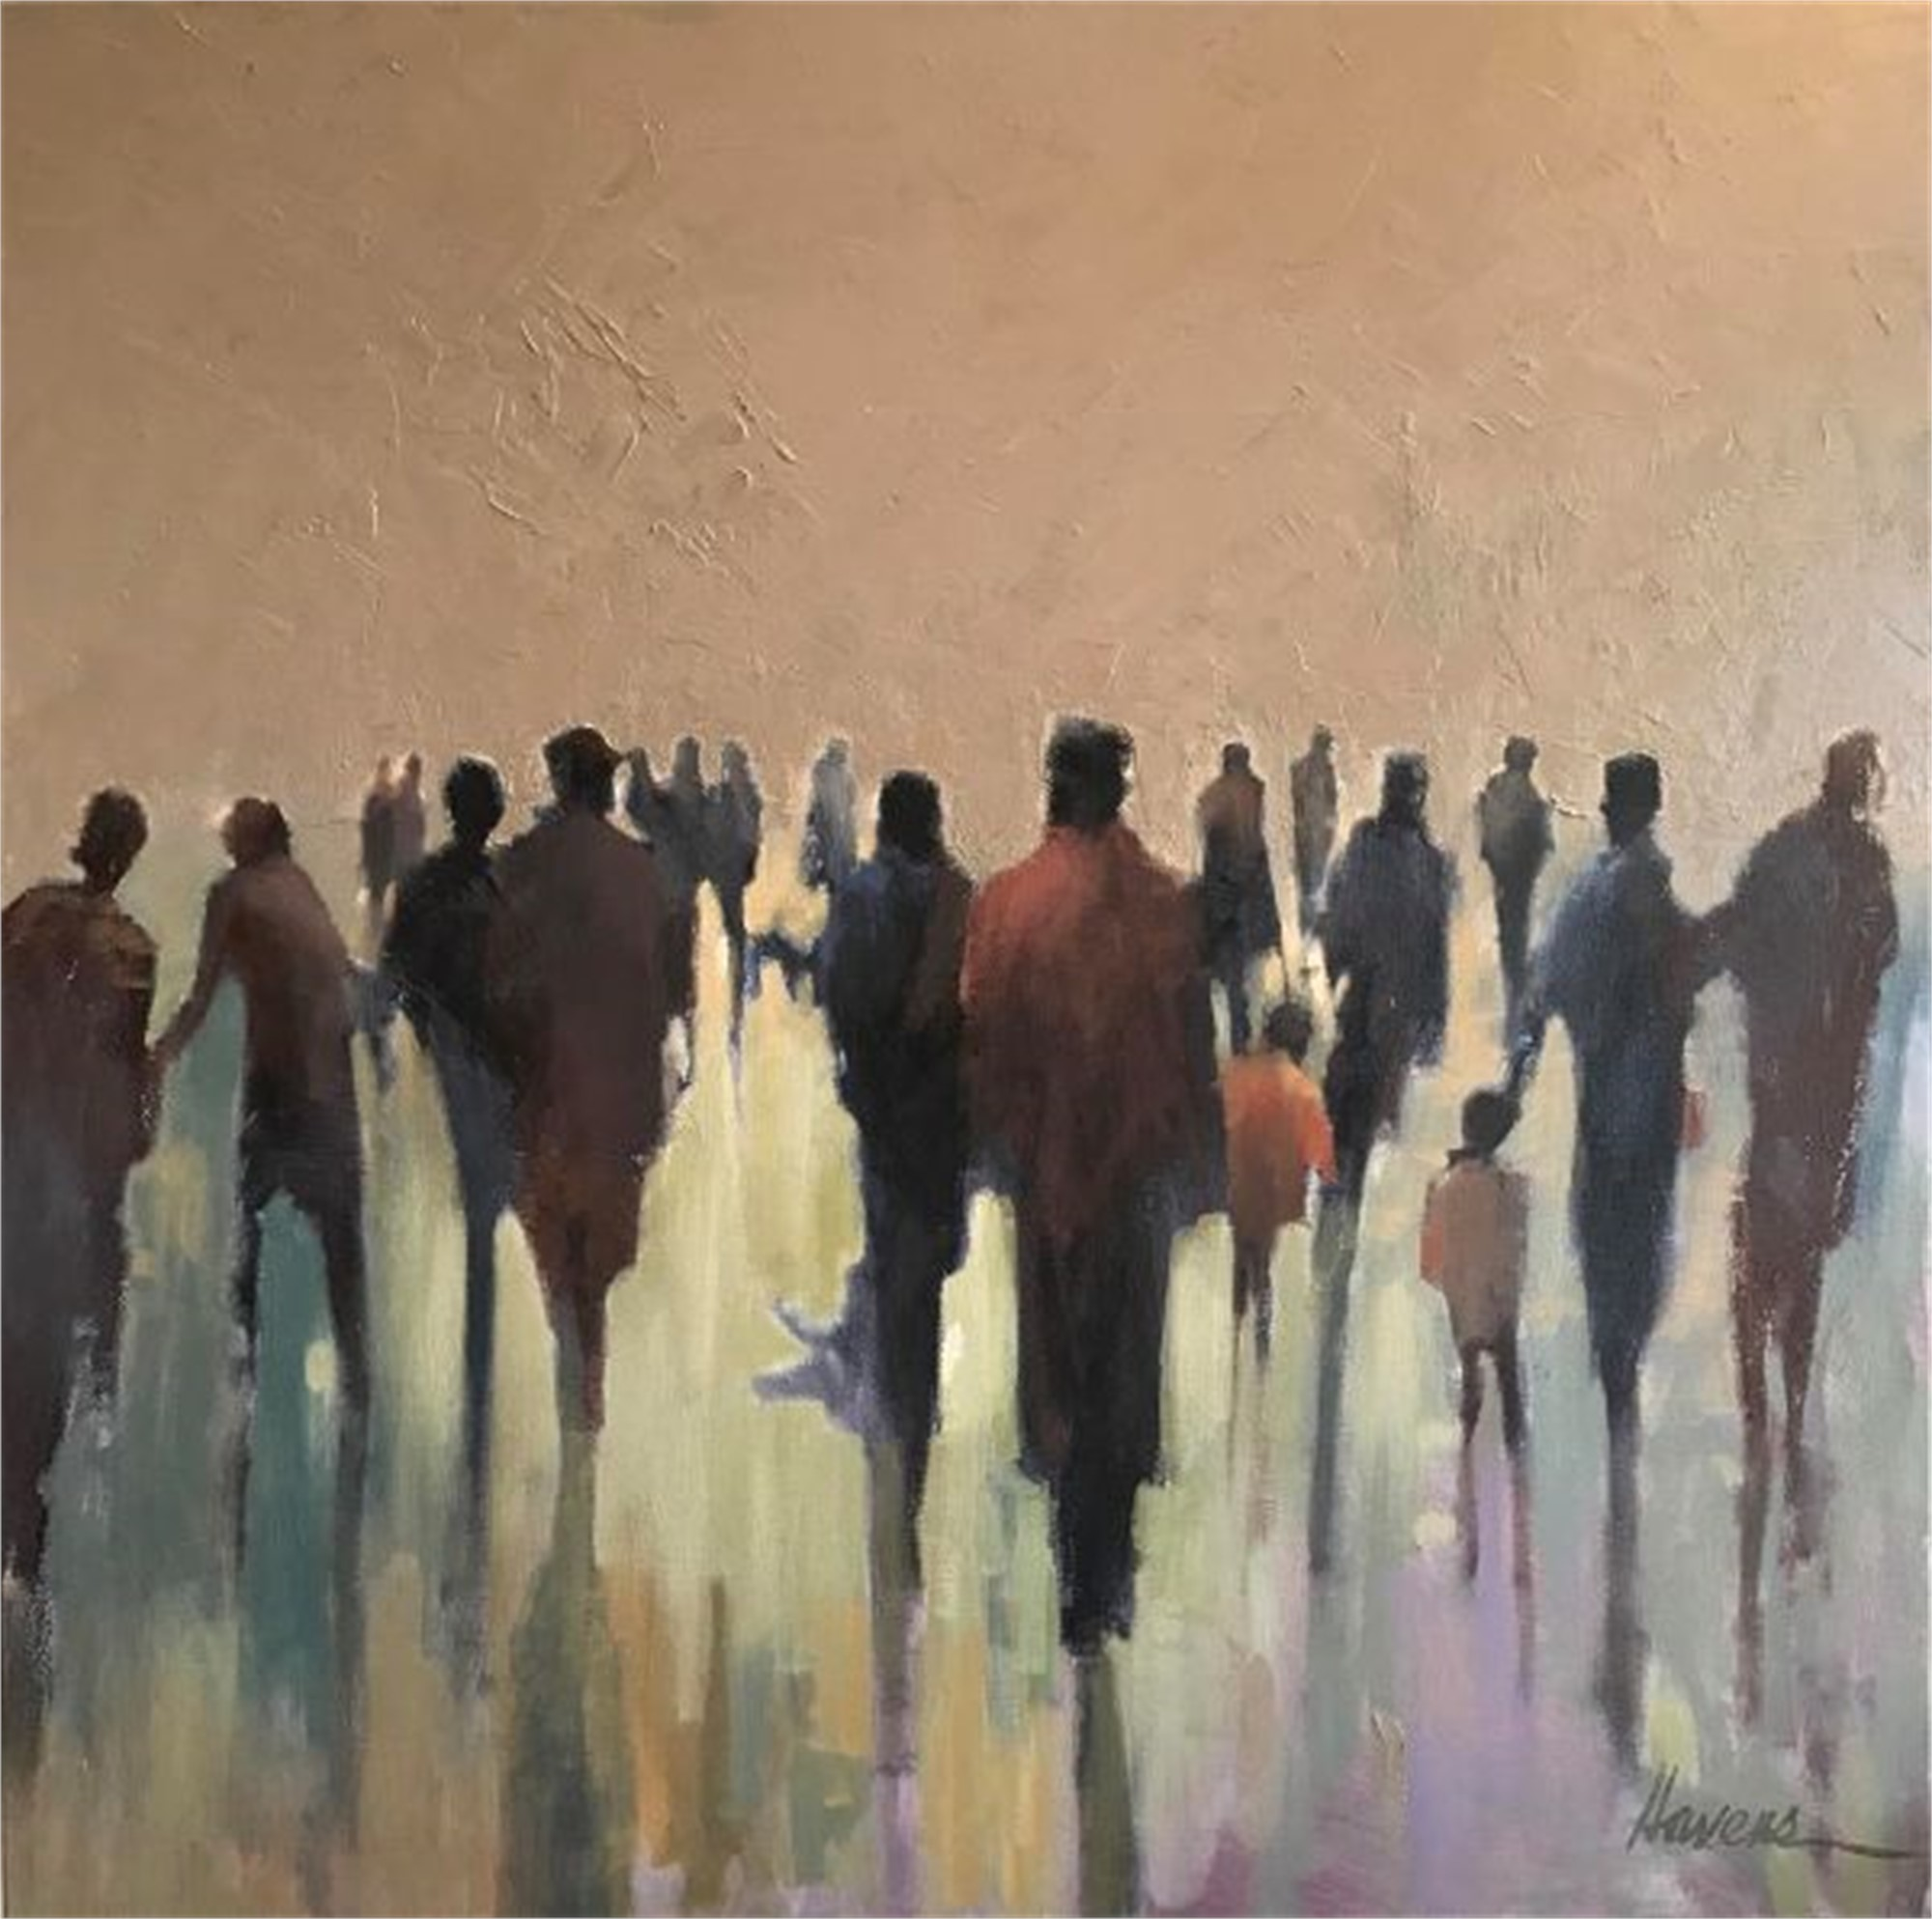 Meeting by Betsy Havens